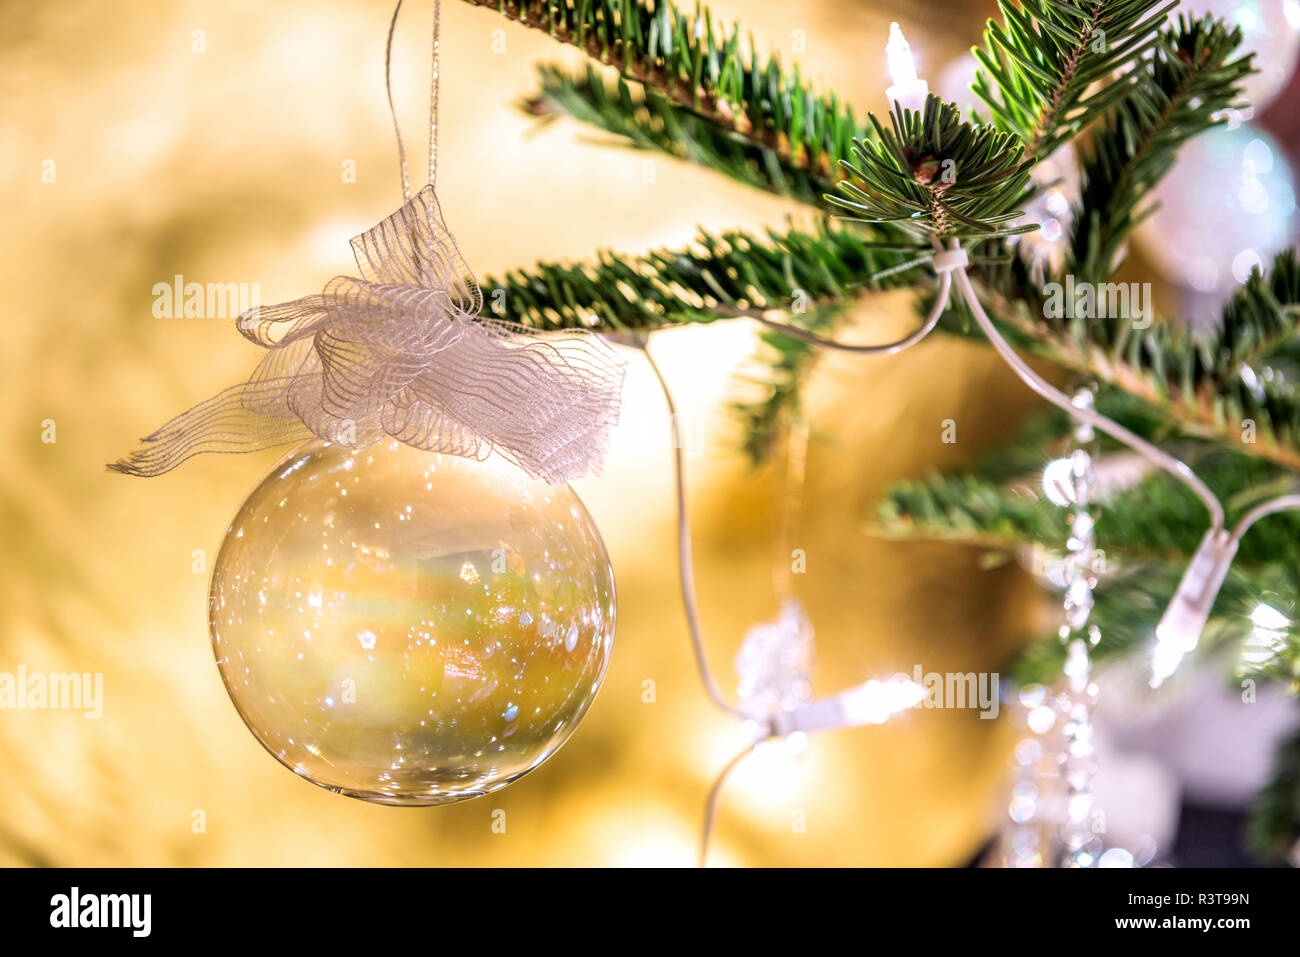 Tanne Zweig mit transparenten Weihnachtskugel, close-up Stockbild